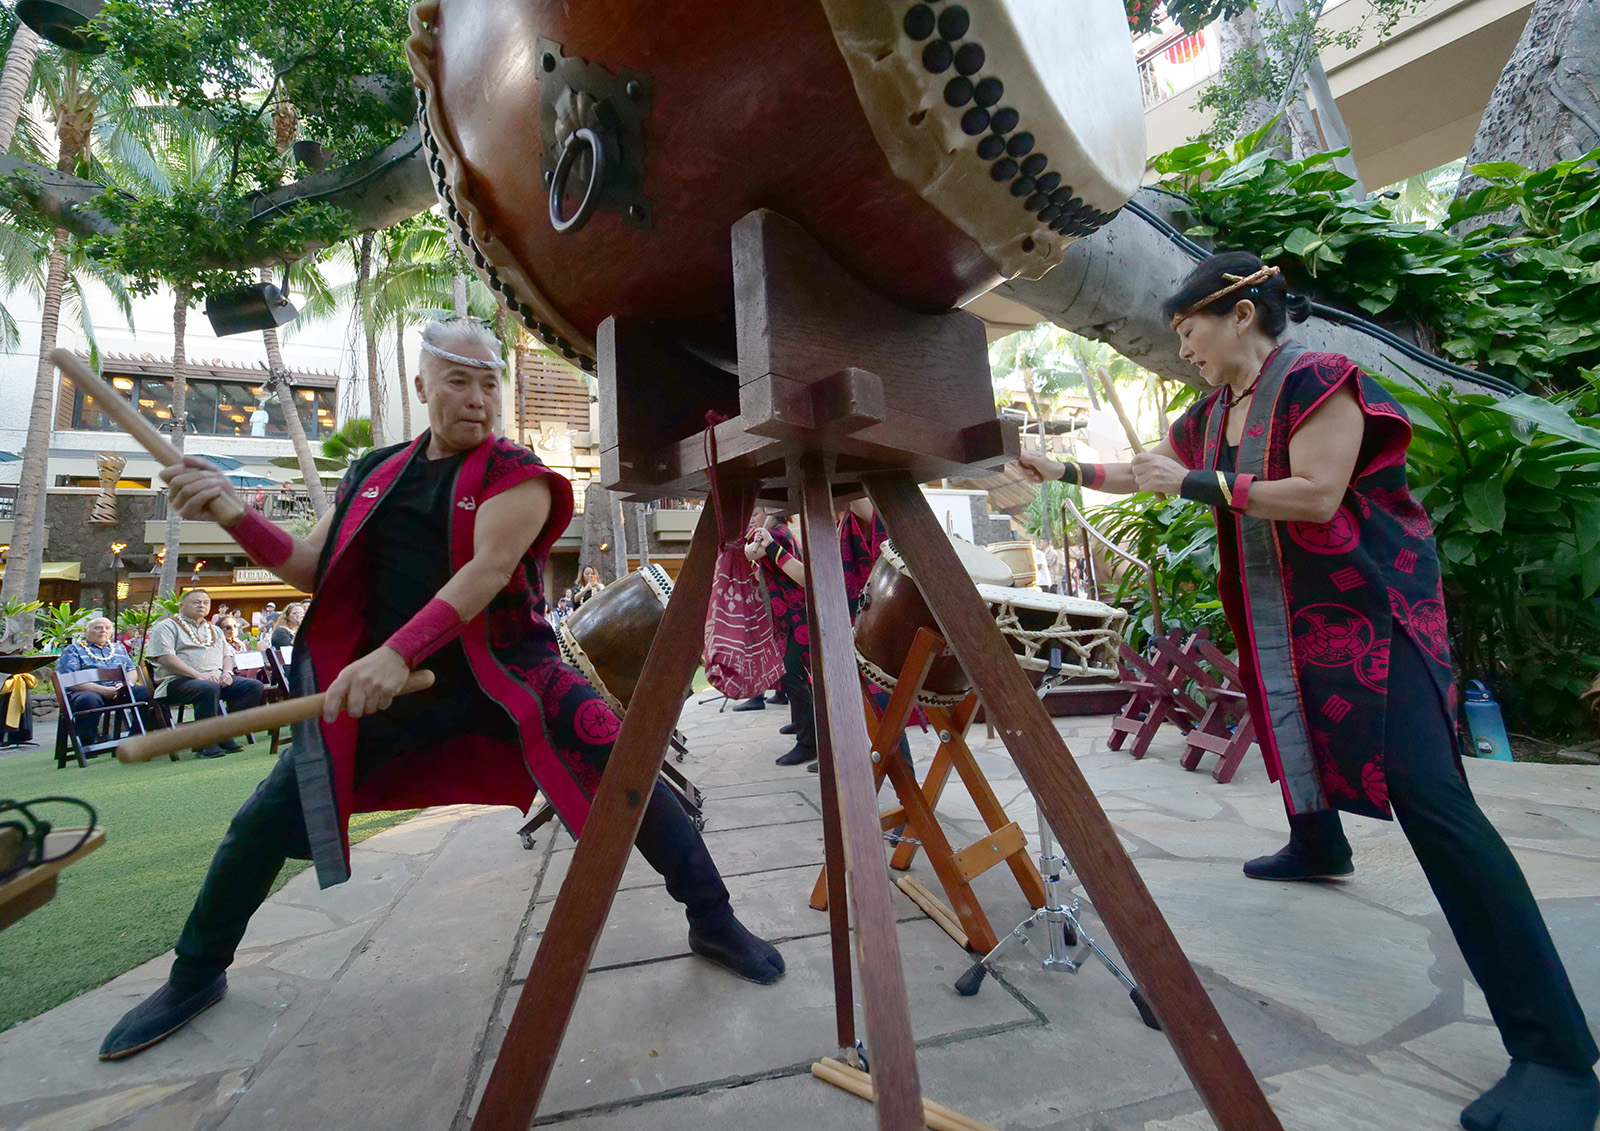 <p>Taiko Center of the Pacific founders Kenny Endo, left, playing an odaiko (Japanese for big drum) and Chizuko Endo, right, playing a taiko set, which includes a rope lashed shime daiko and small sumo odaiko, perform together with a small group of students at the Royal Hawaiian Shopping Center in Waikiki. The husband and wife team have been promoting their message of peace through music and collaboration around the world since founding their school for taiko well over 20 years ago.</p>